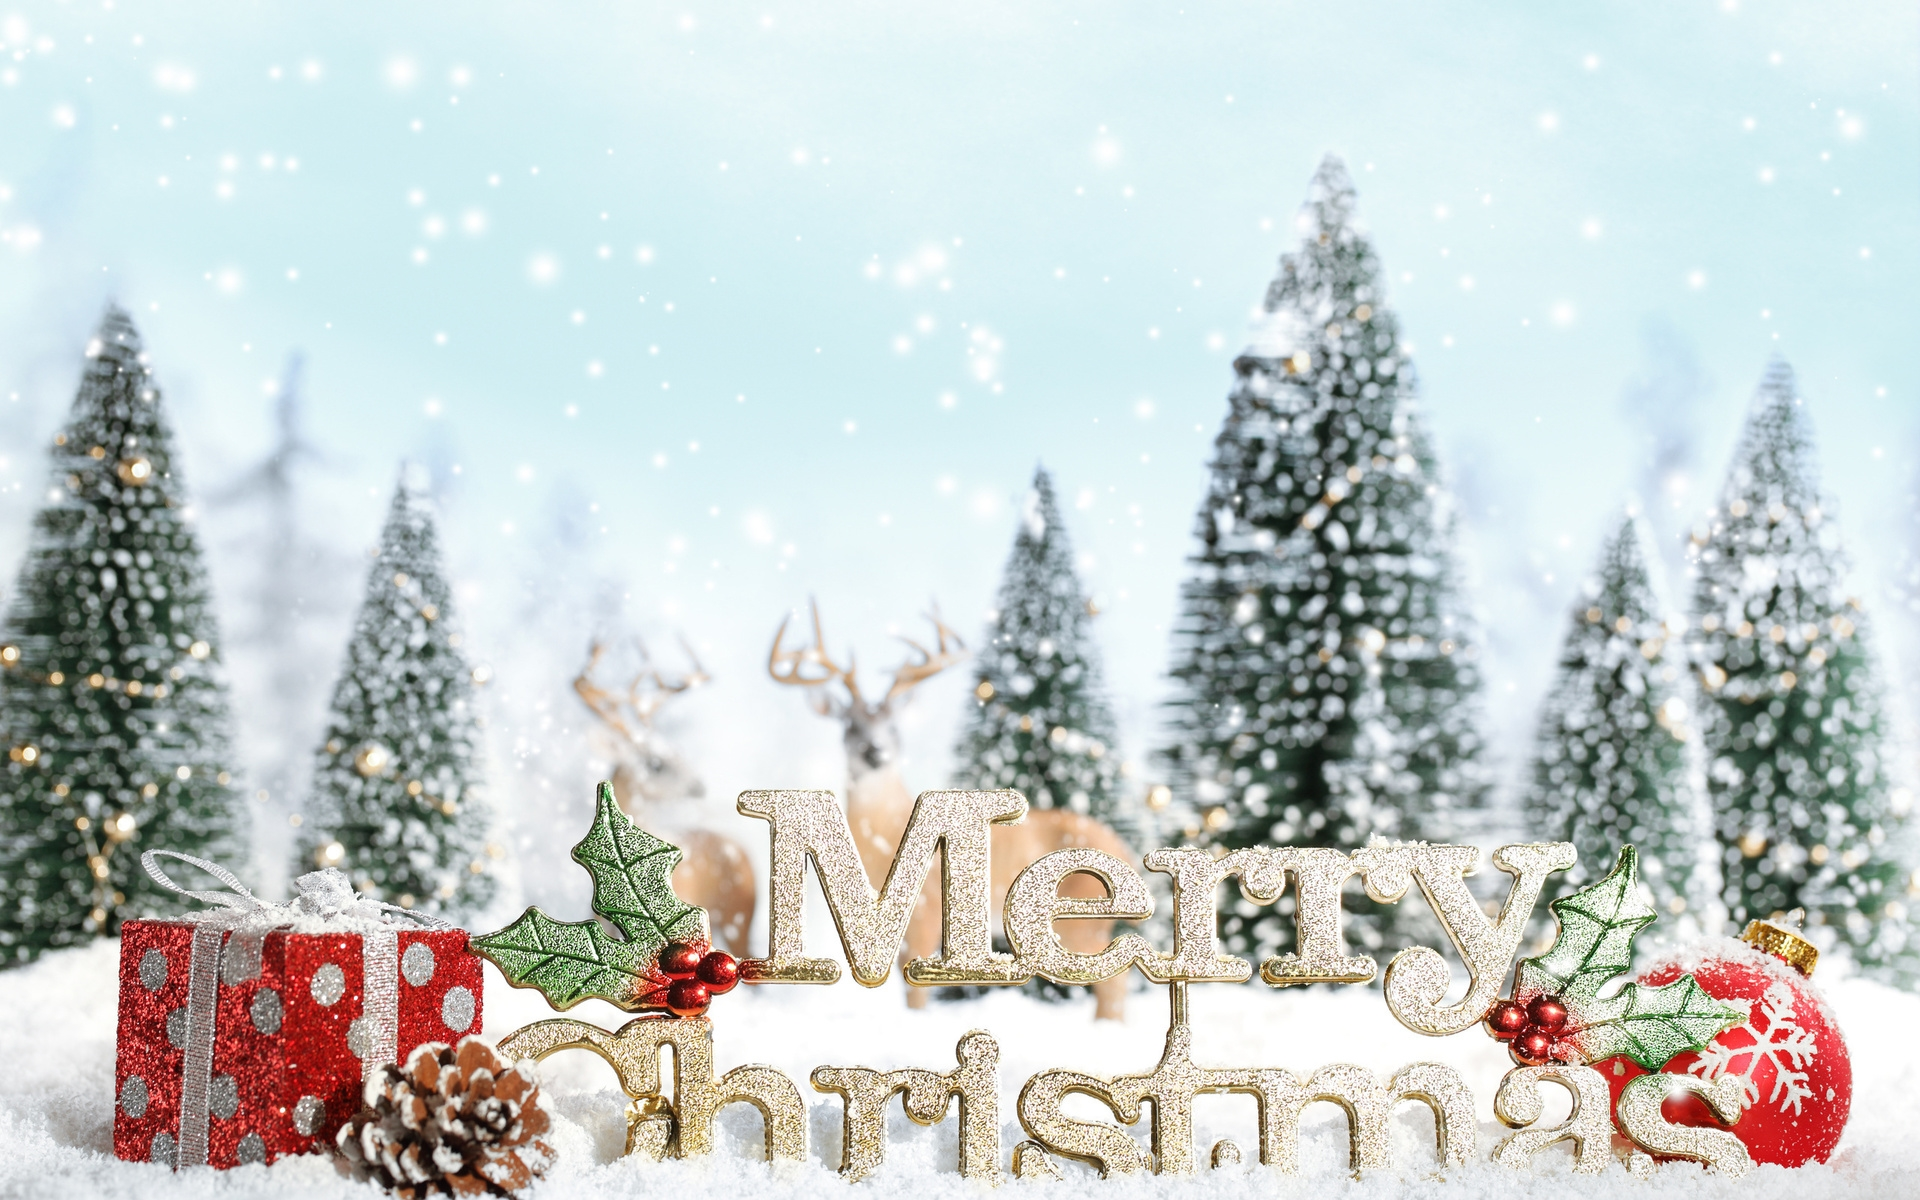 2016 Christmas Background Wallpaper | Christmas Background